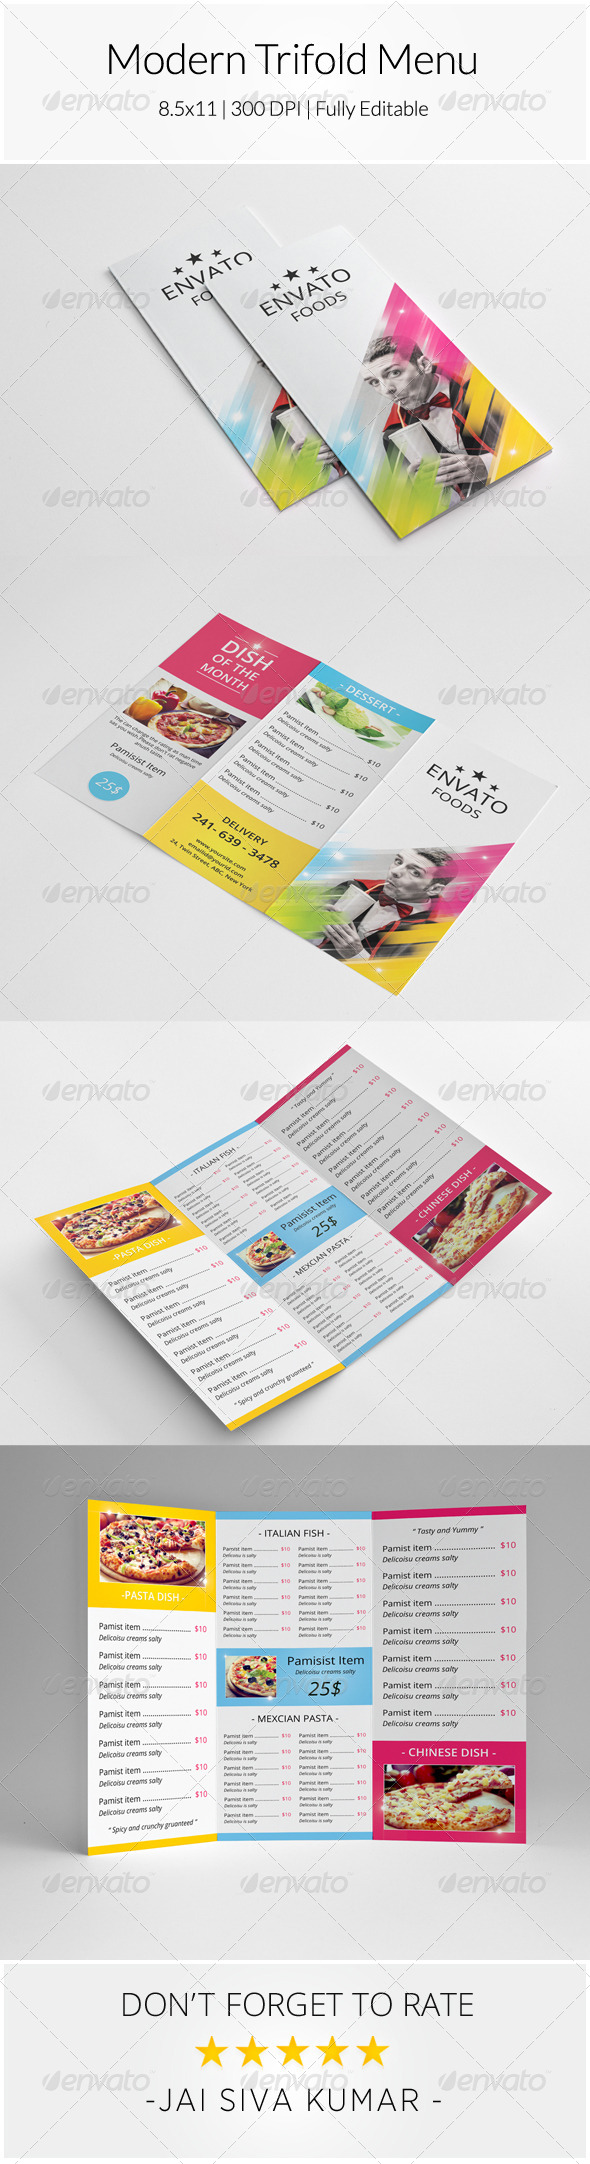 GraphicRiver Modern Trifold Menu 8639885